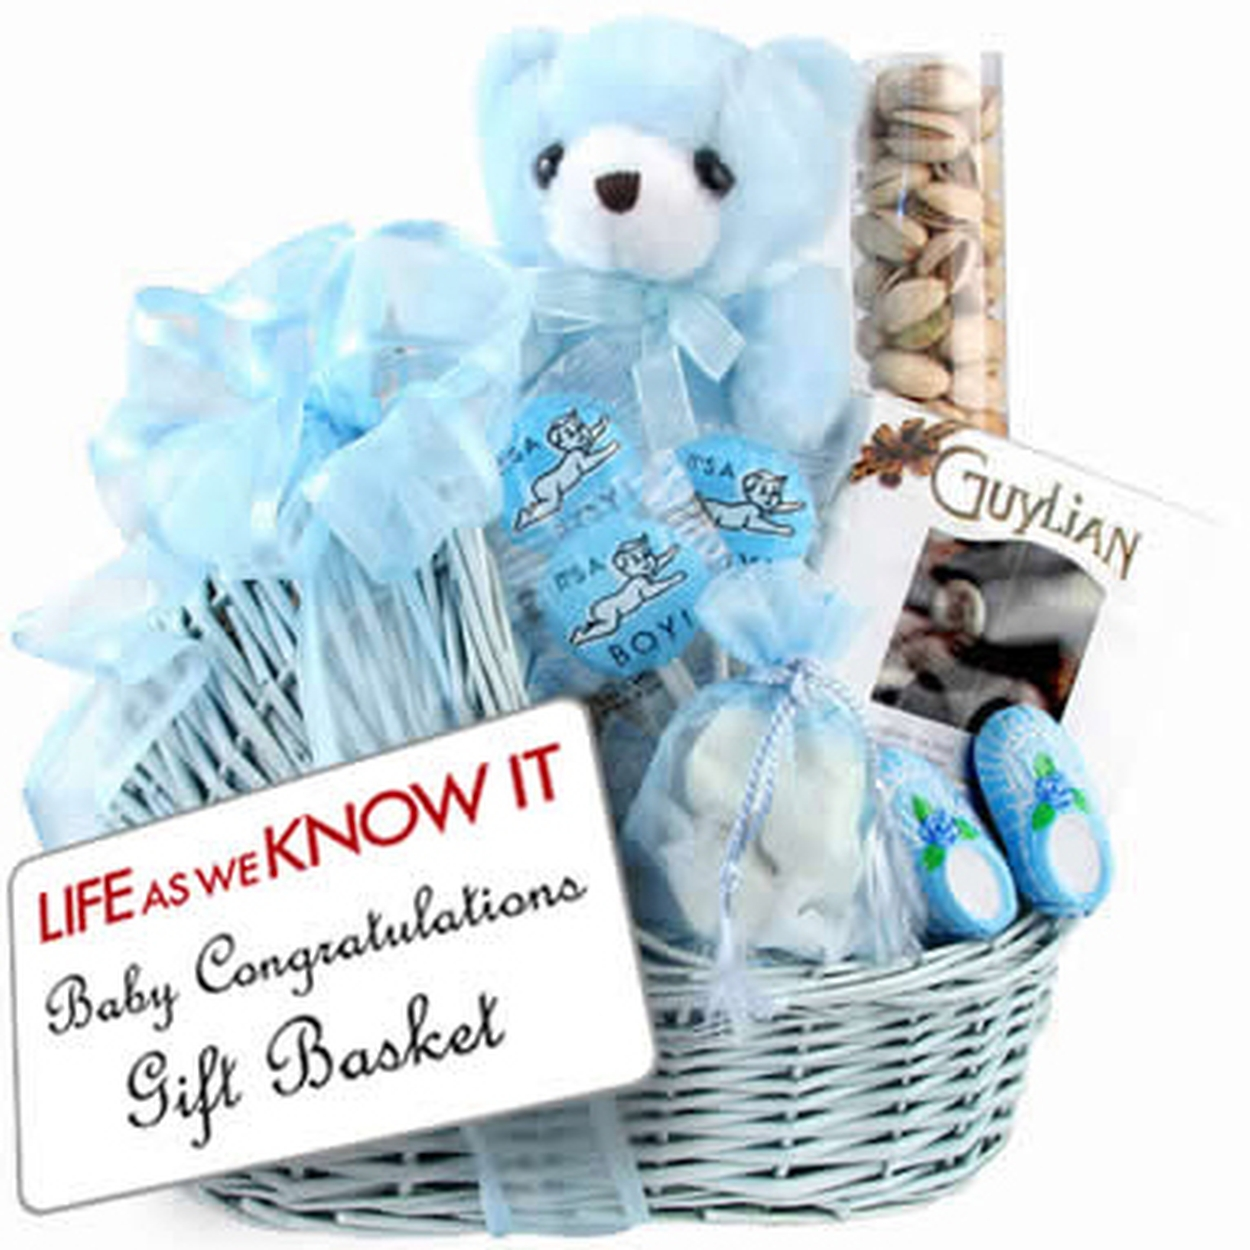 16a1fec2d5b8 Baby Boy Congratulations Gift Basket Inspired by